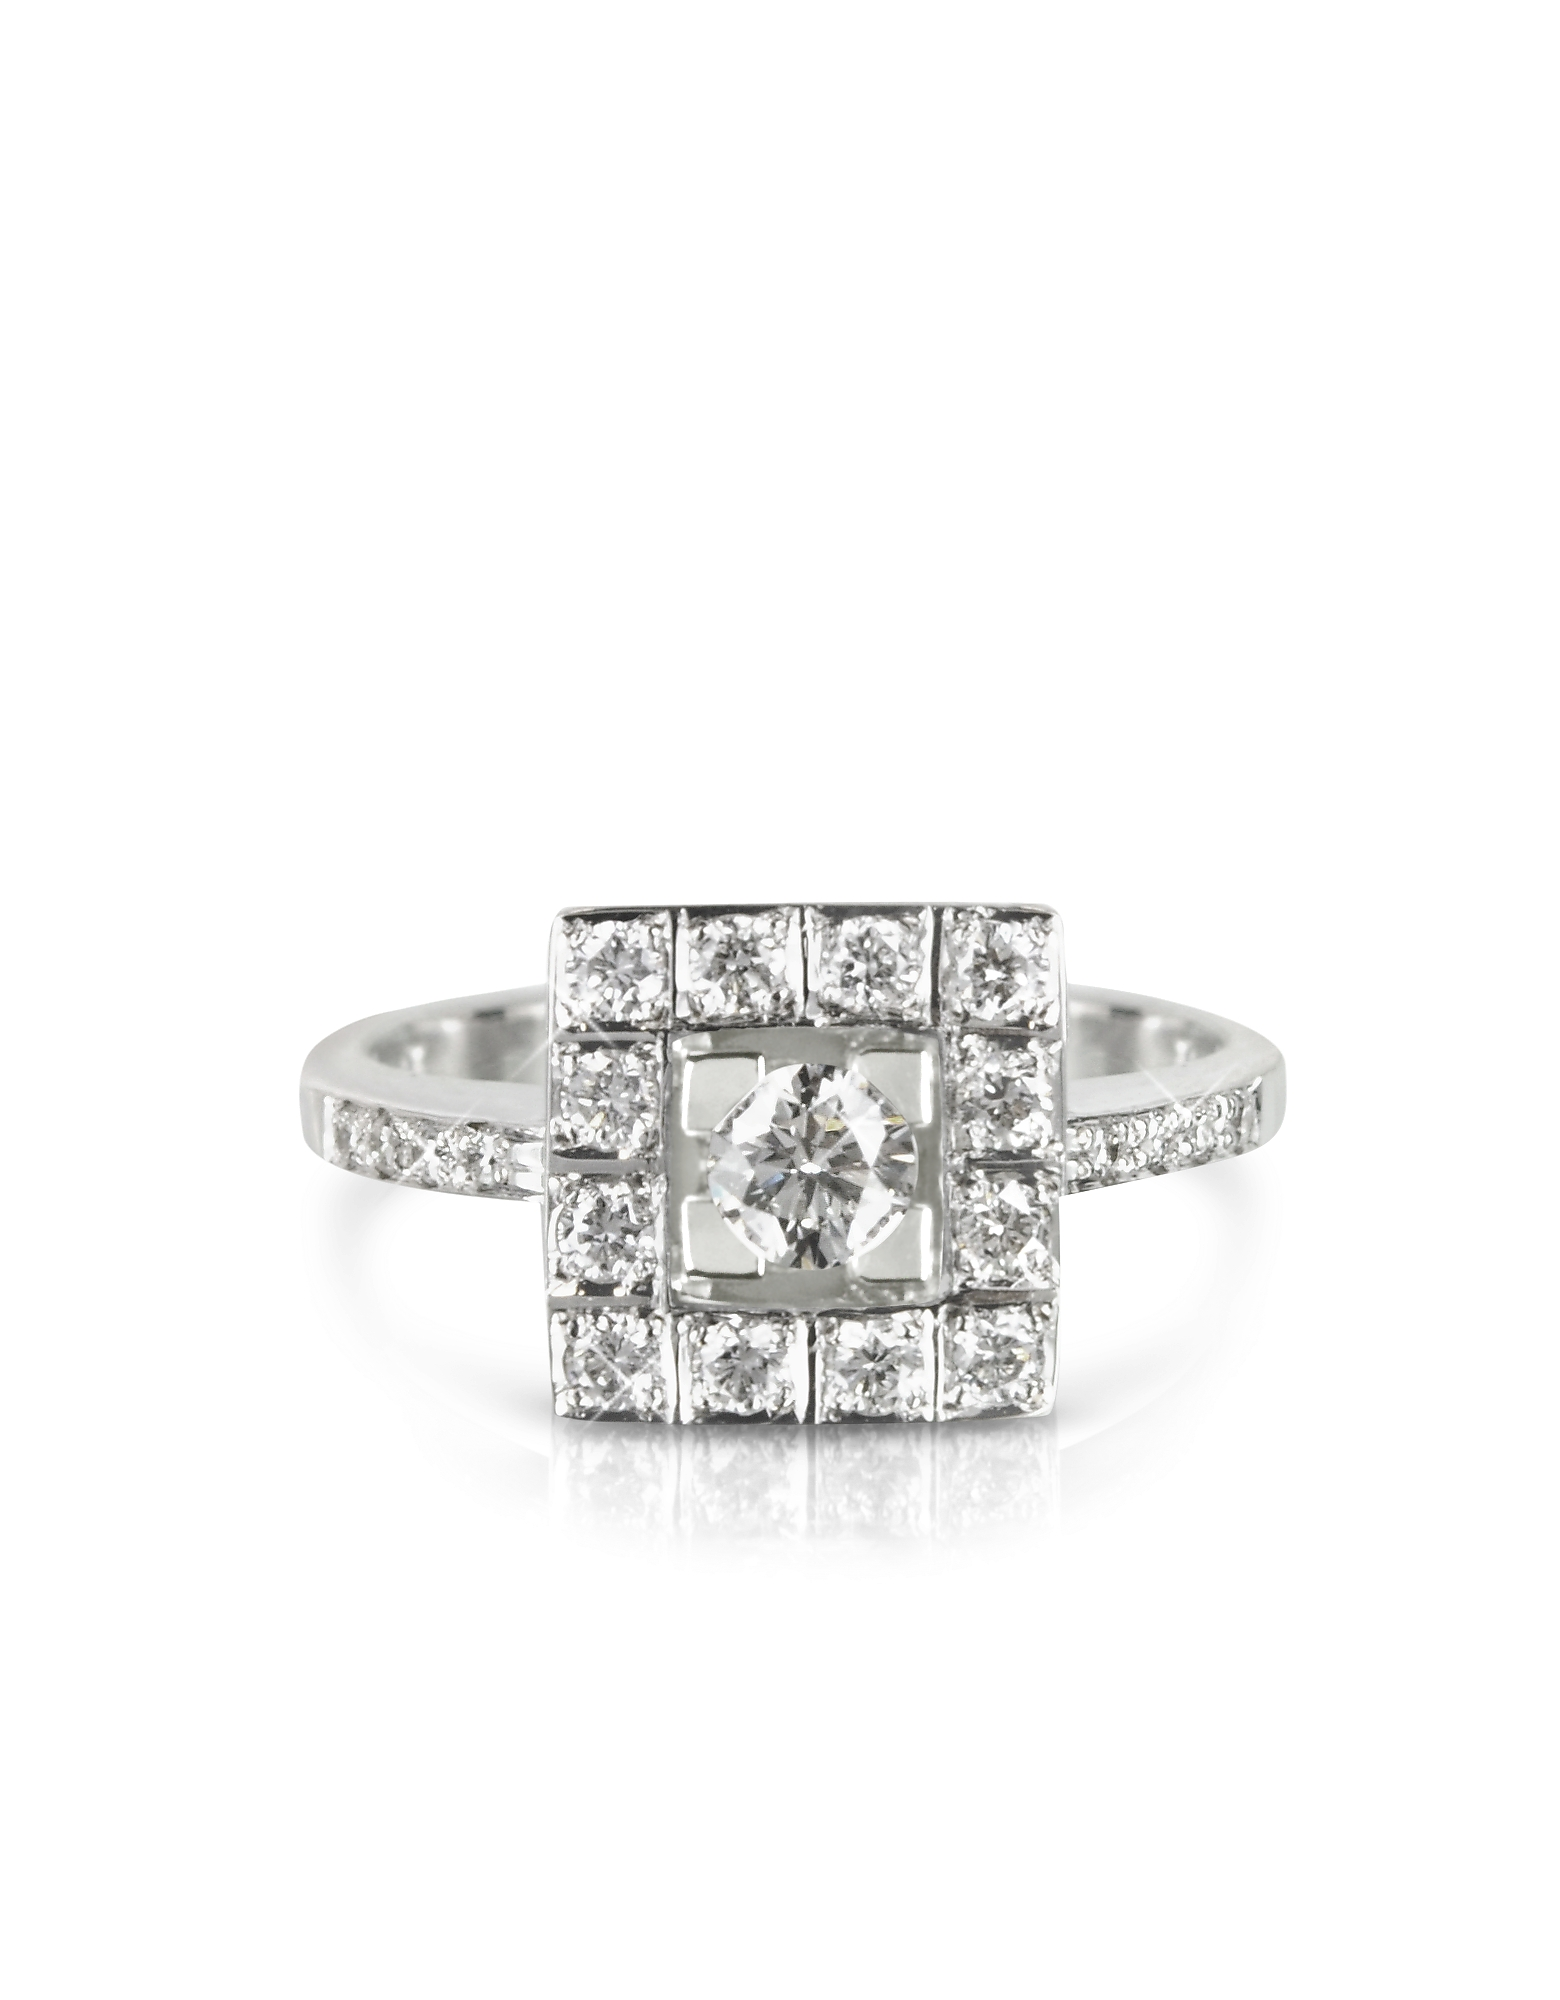 Forzieri Rings, 0.51 ctw Diamond 18K White Gold Ring